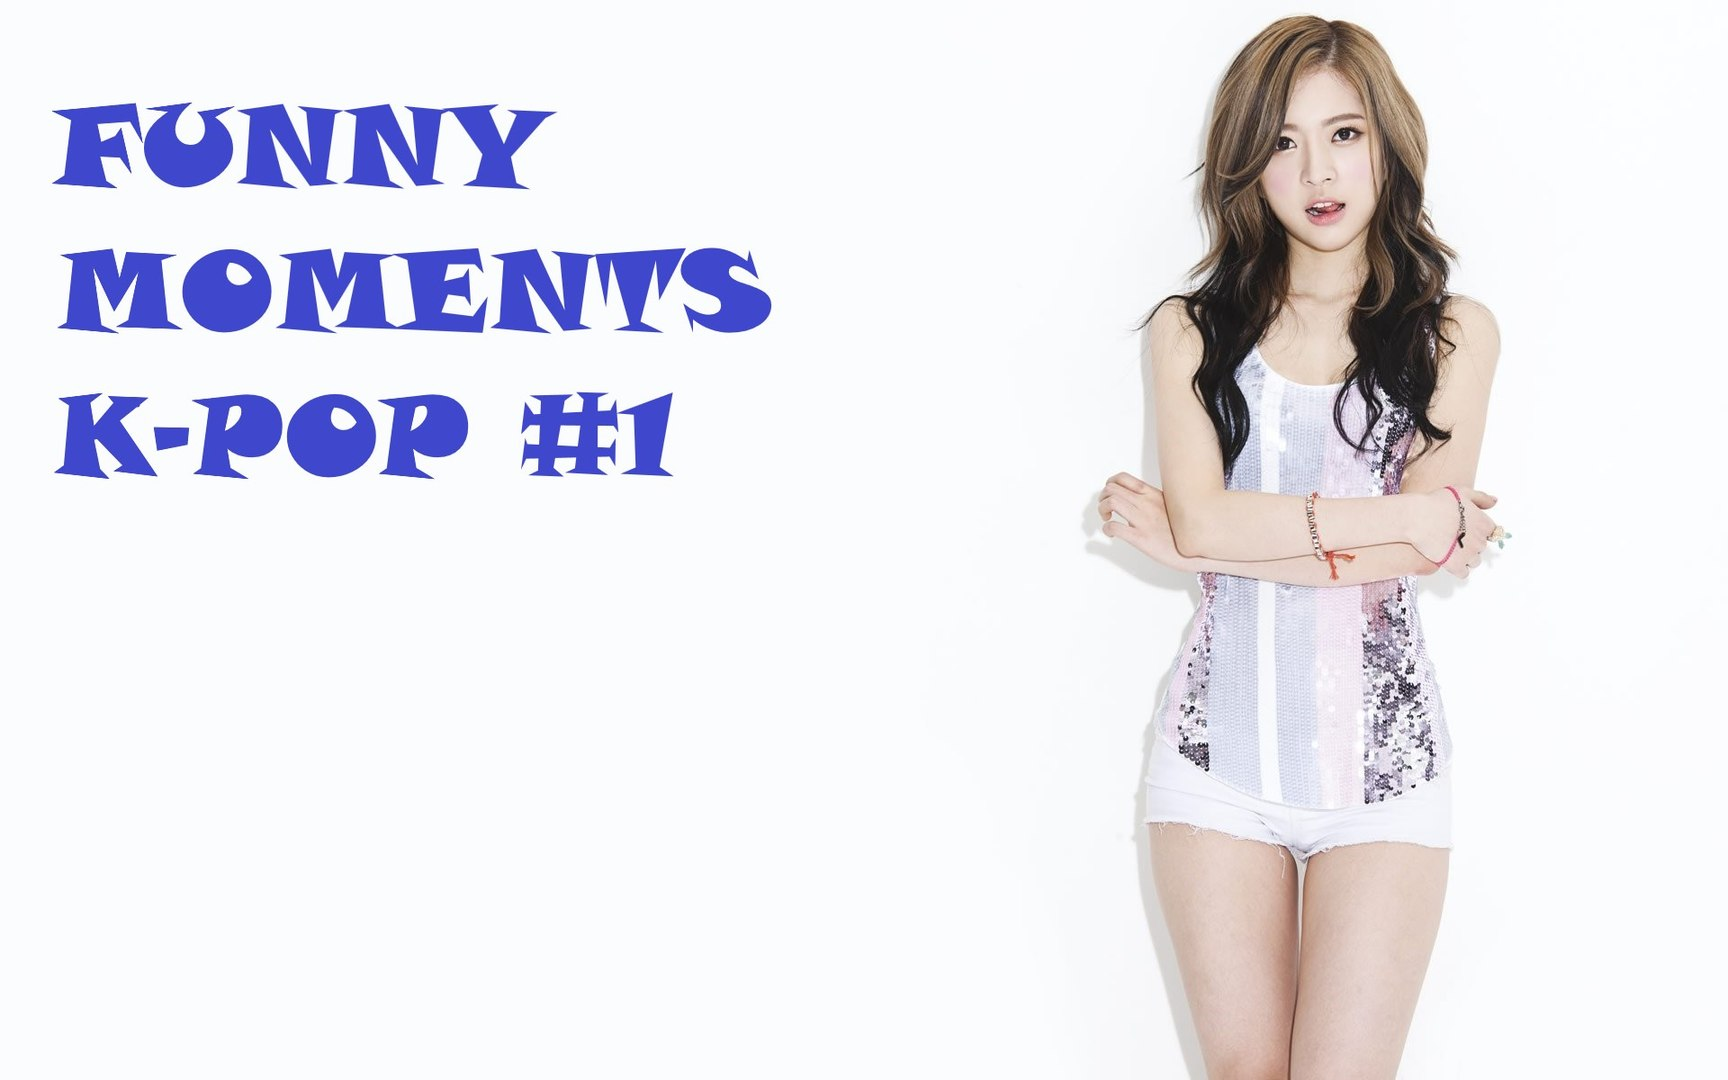 FUNNY MOMENTS  K-POP #1